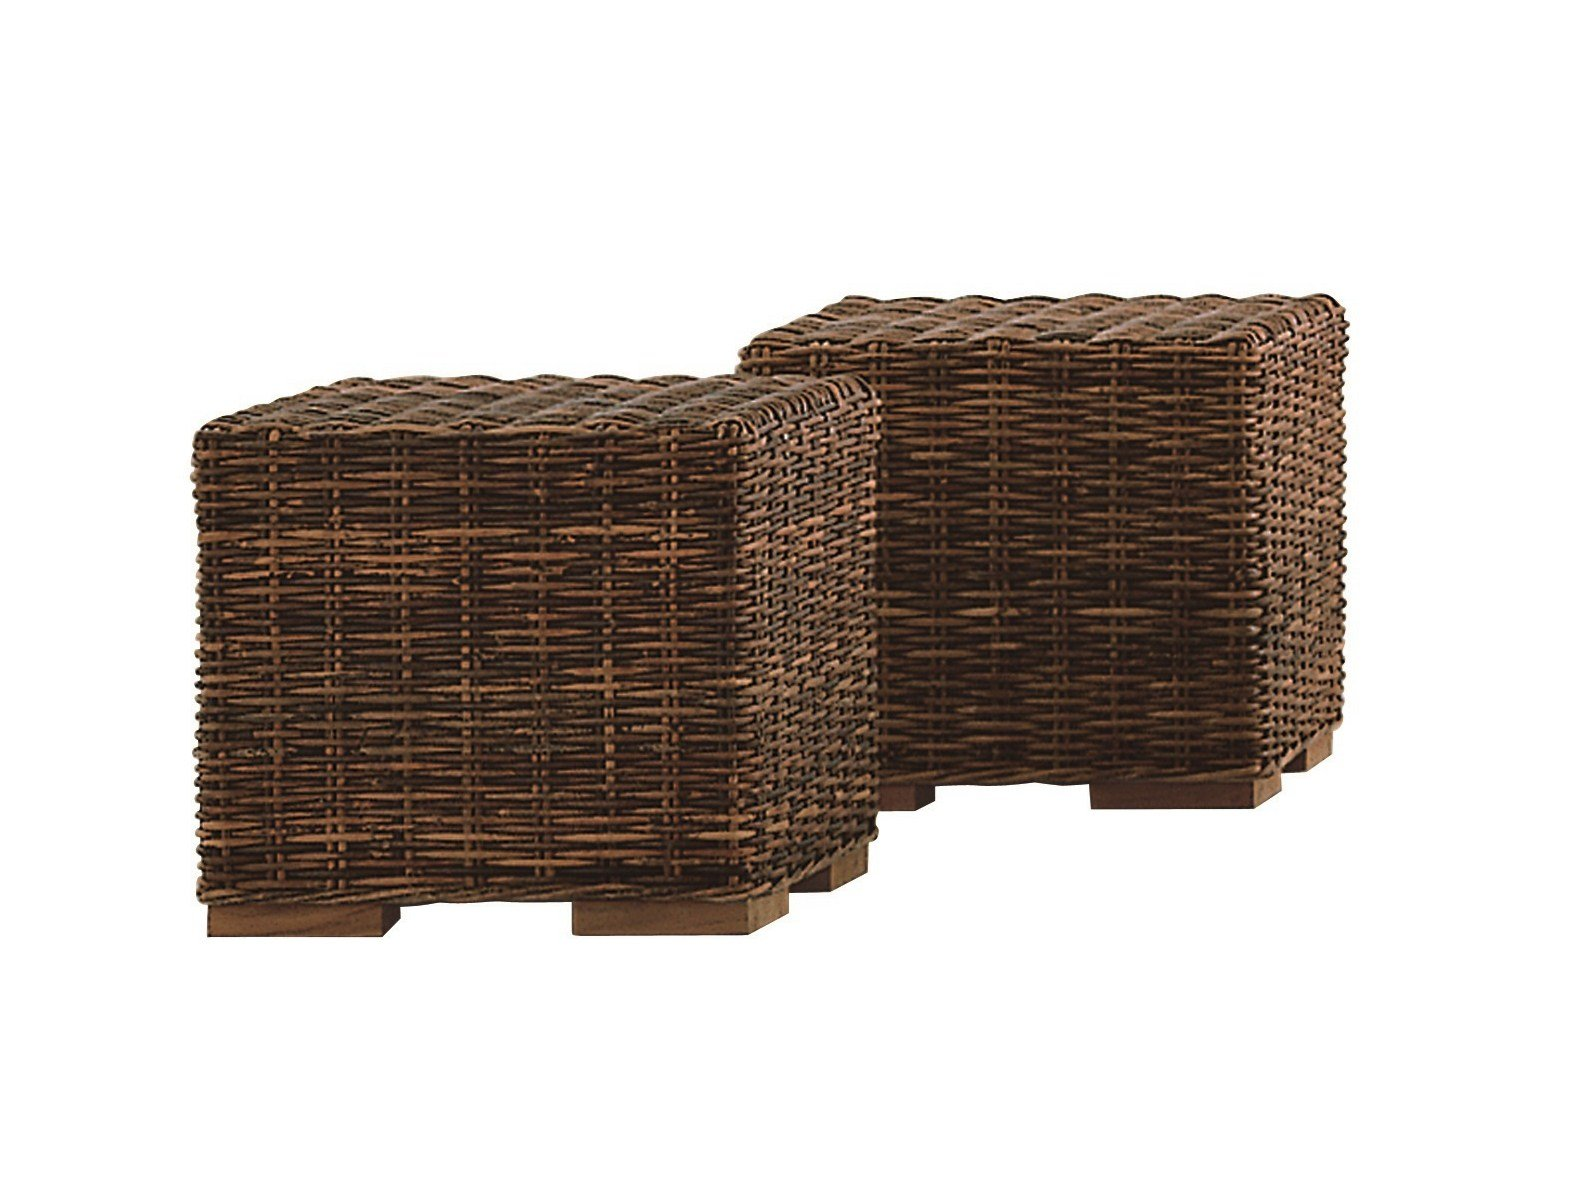 table basse pouf de jardin en rotin croco 11 by gervasoni design paola navone. Black Bedroom Furniture Sets. Home Design Ideas